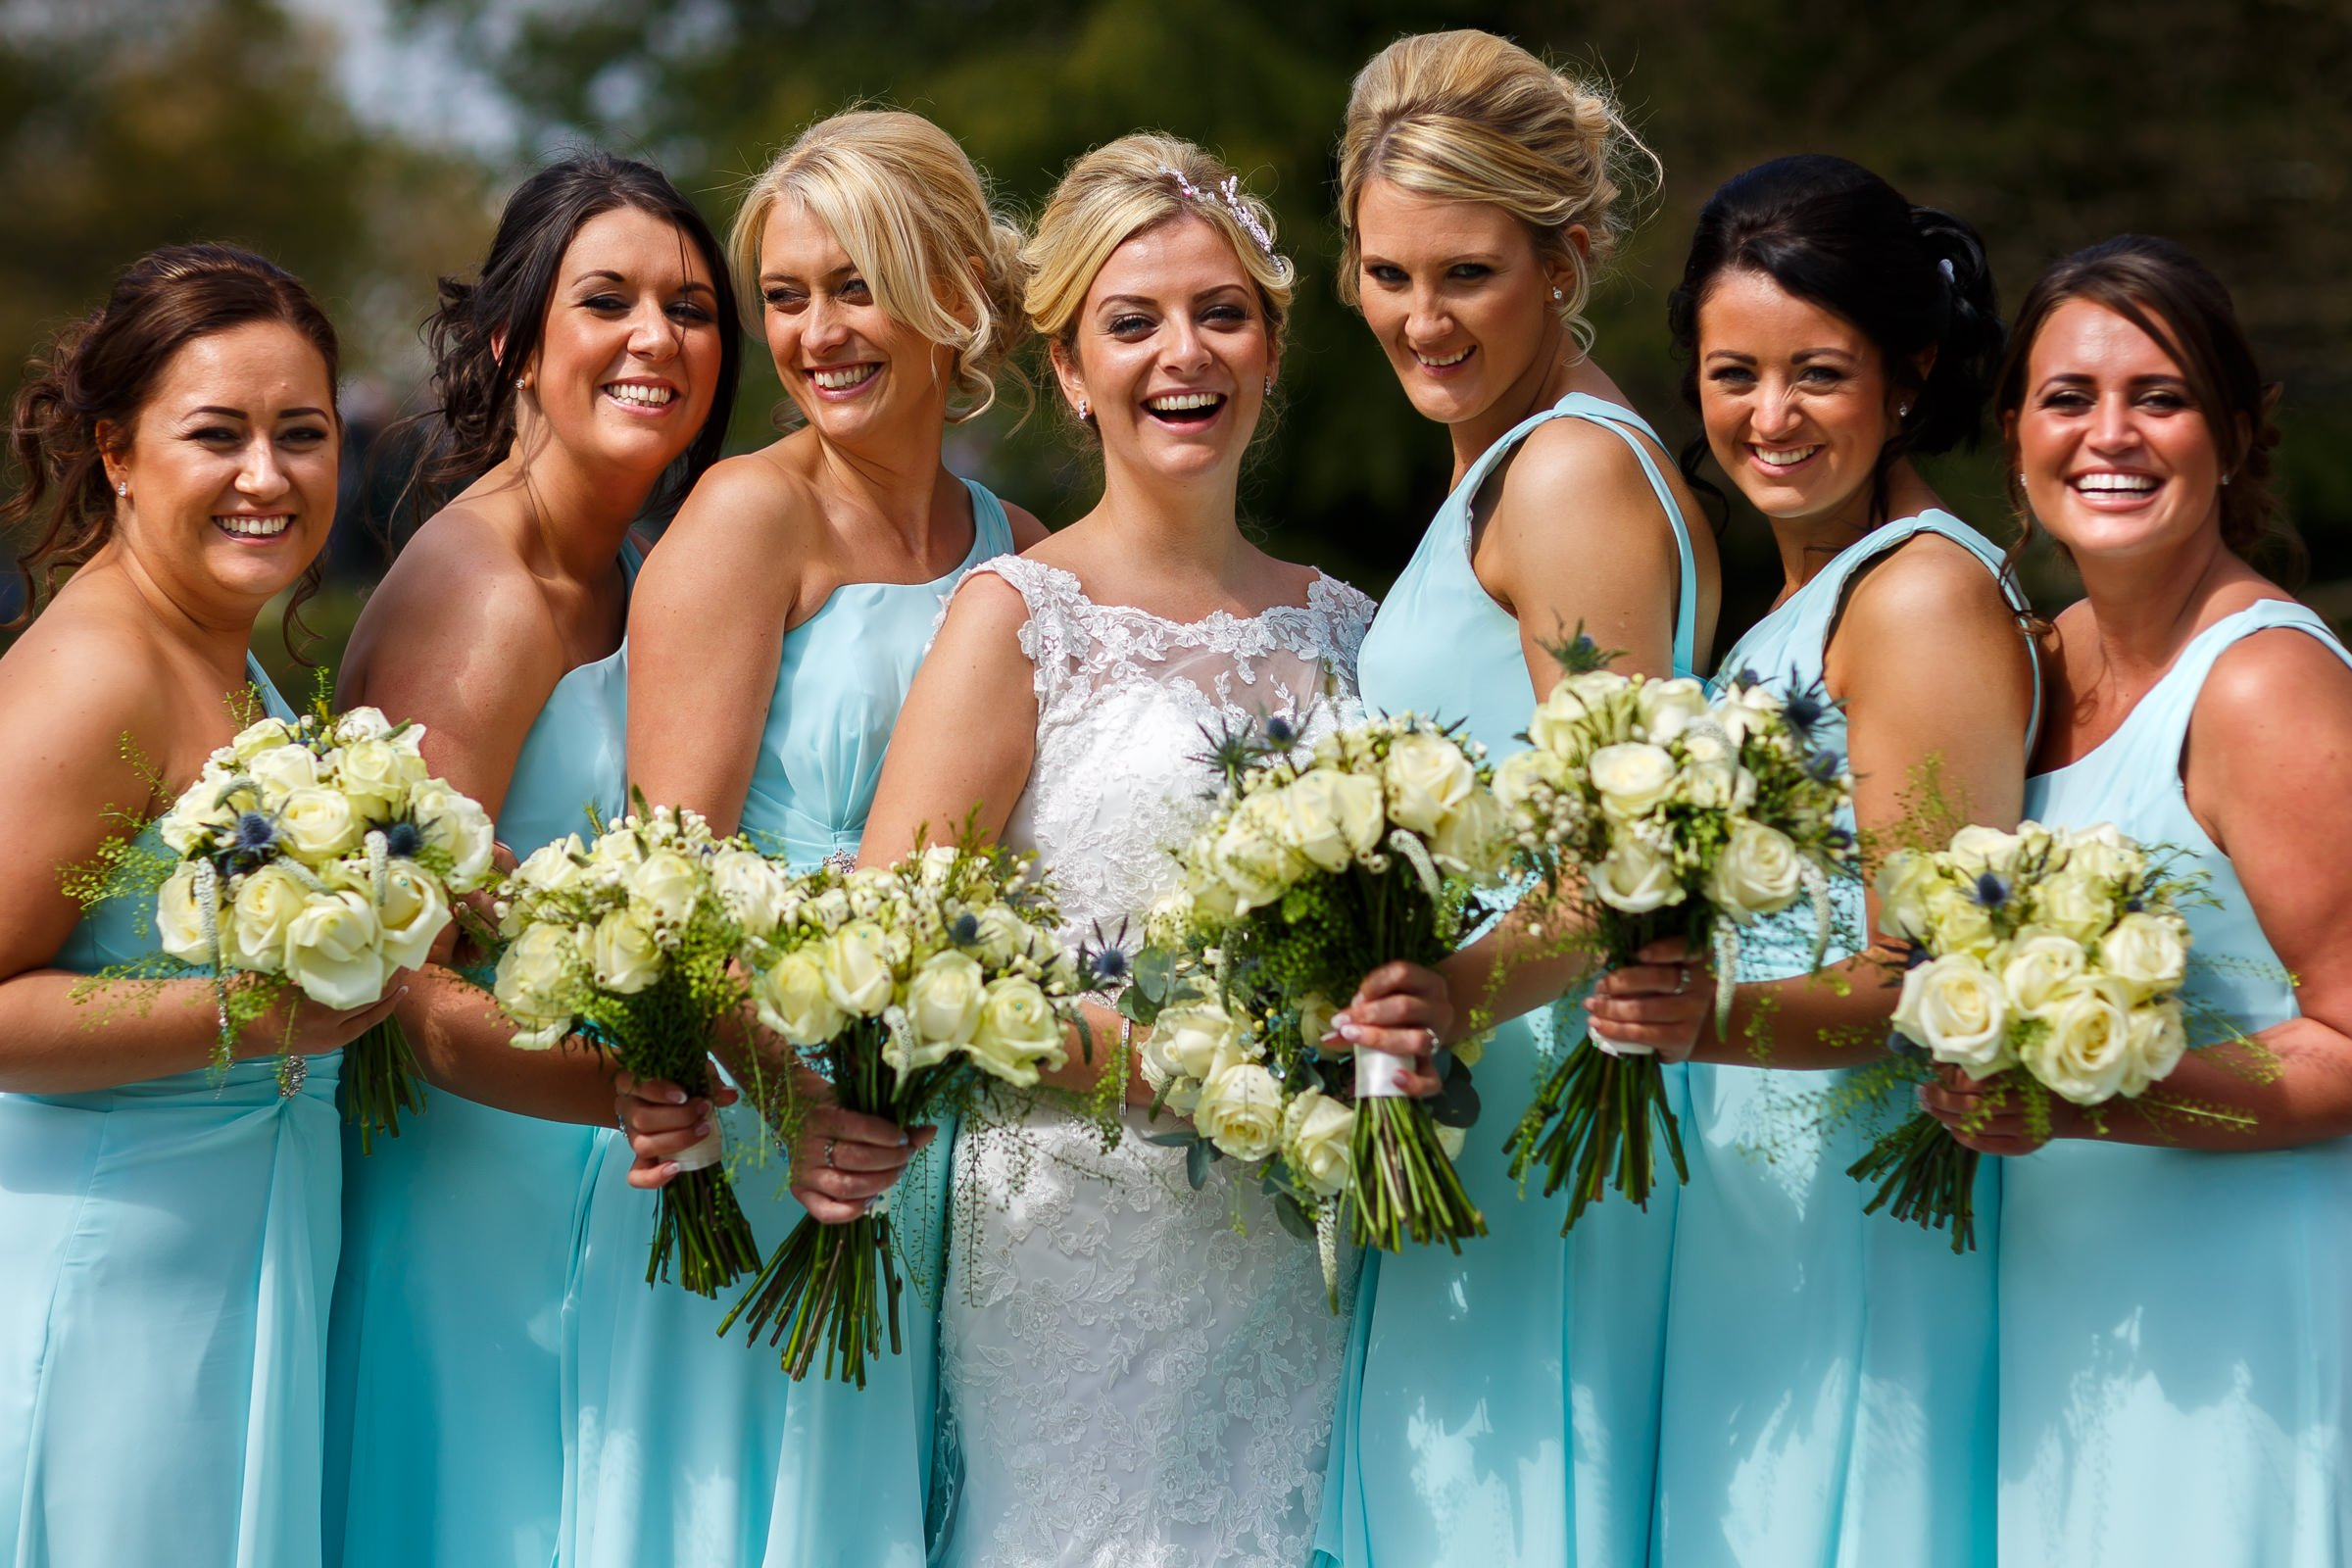 Bright and colourful wedding photography